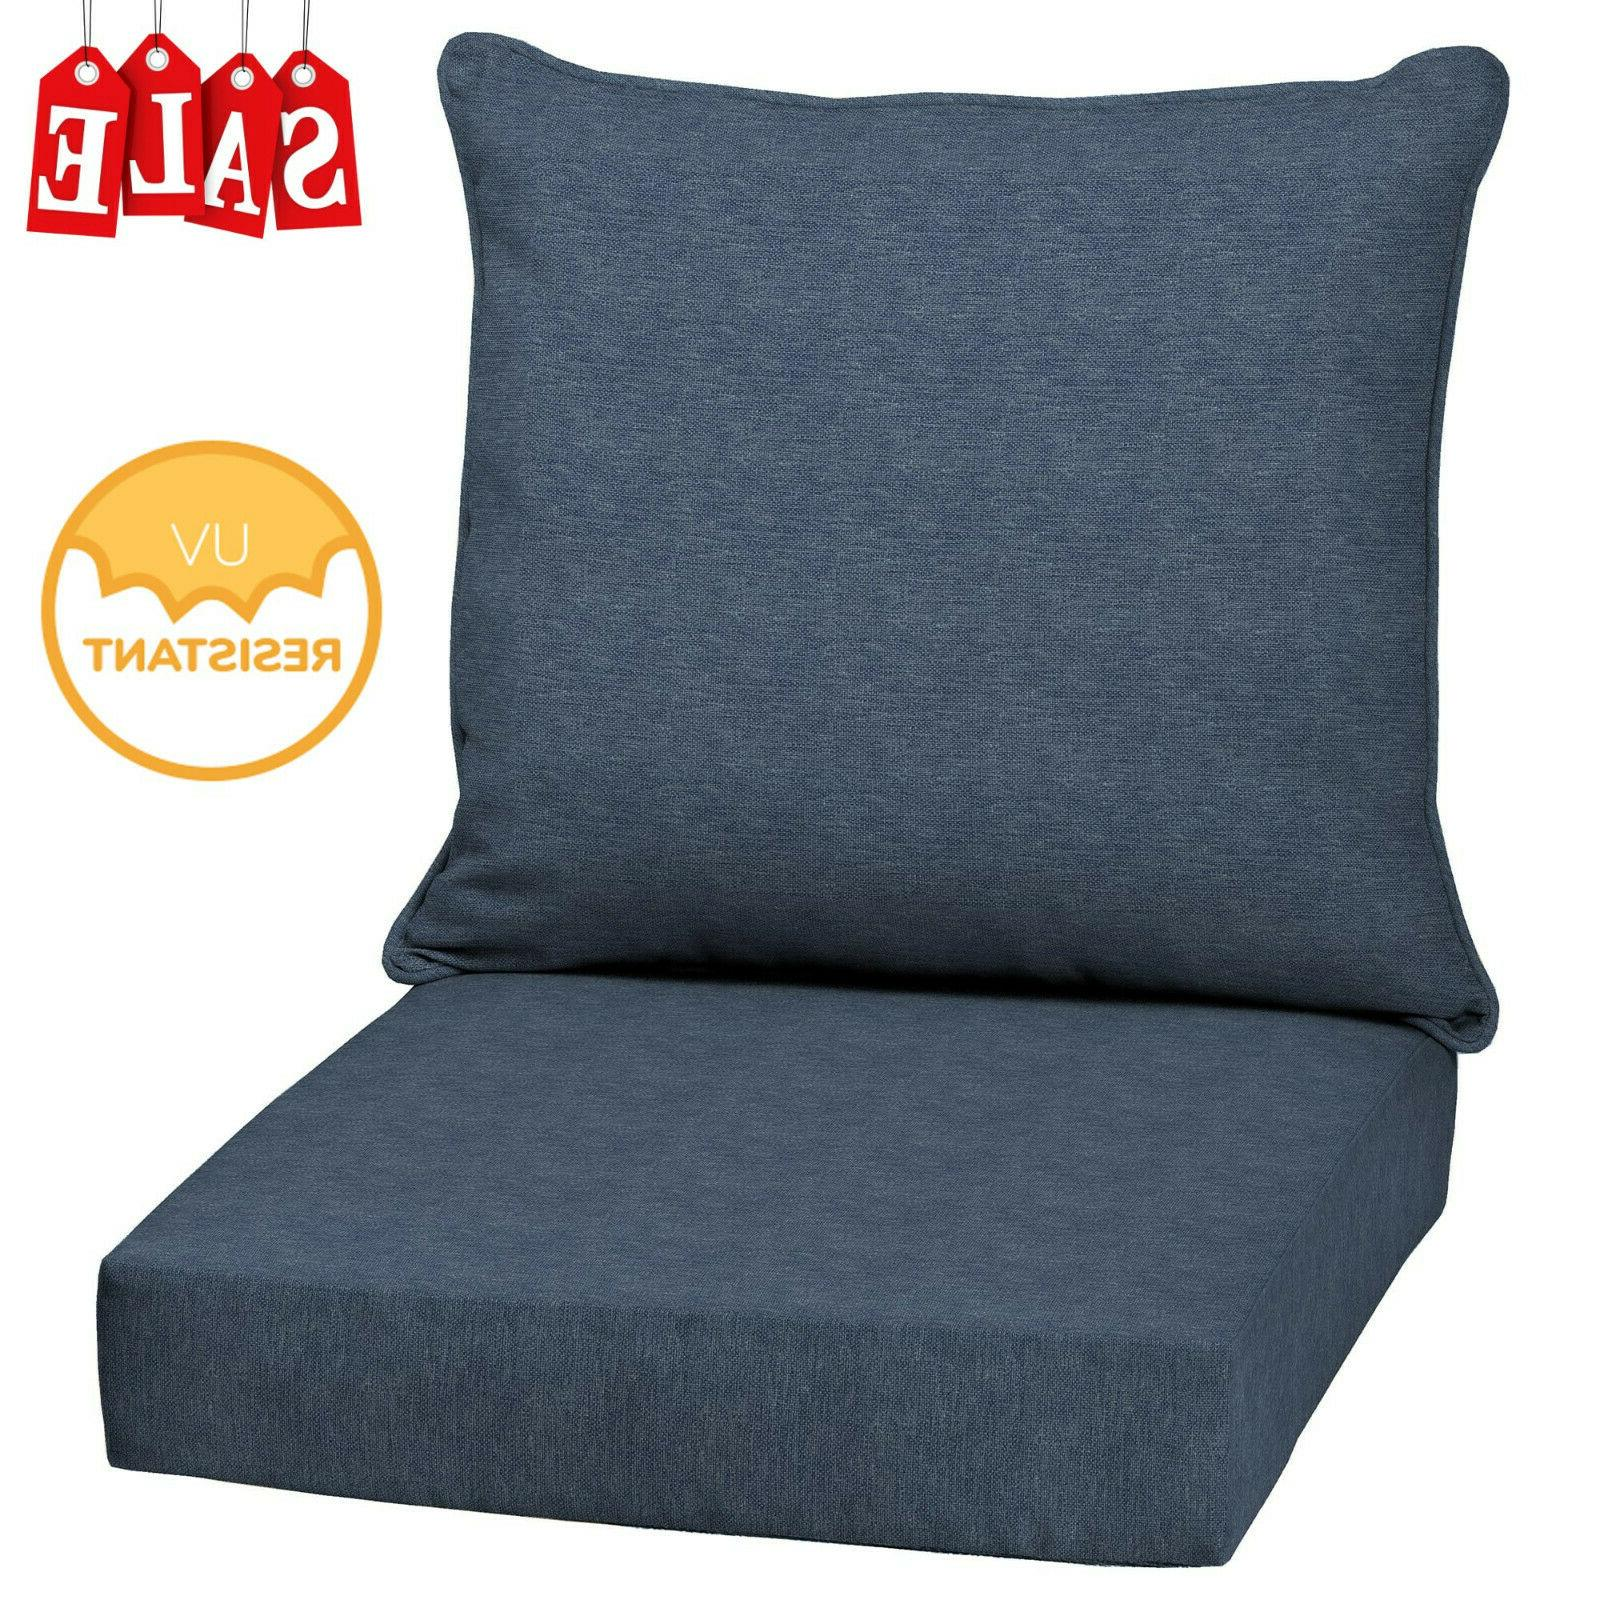 Blue Outdoor Deep Seat Chair Patio Cushions Set Pad UV Resis